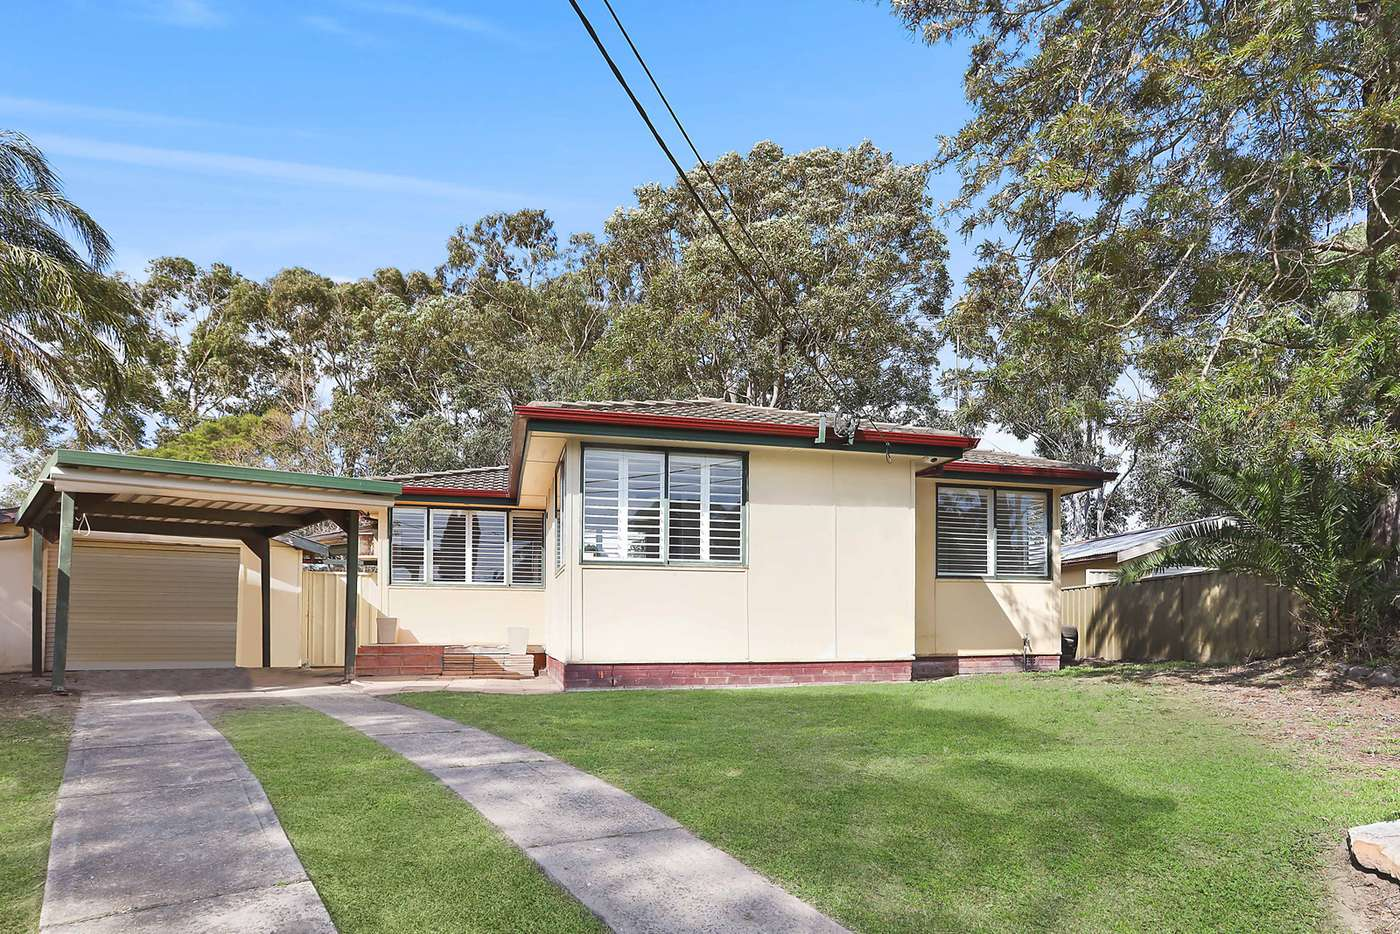 Main view of Homely house listing, 3 Daffodil Street, Marayong NSW 2148